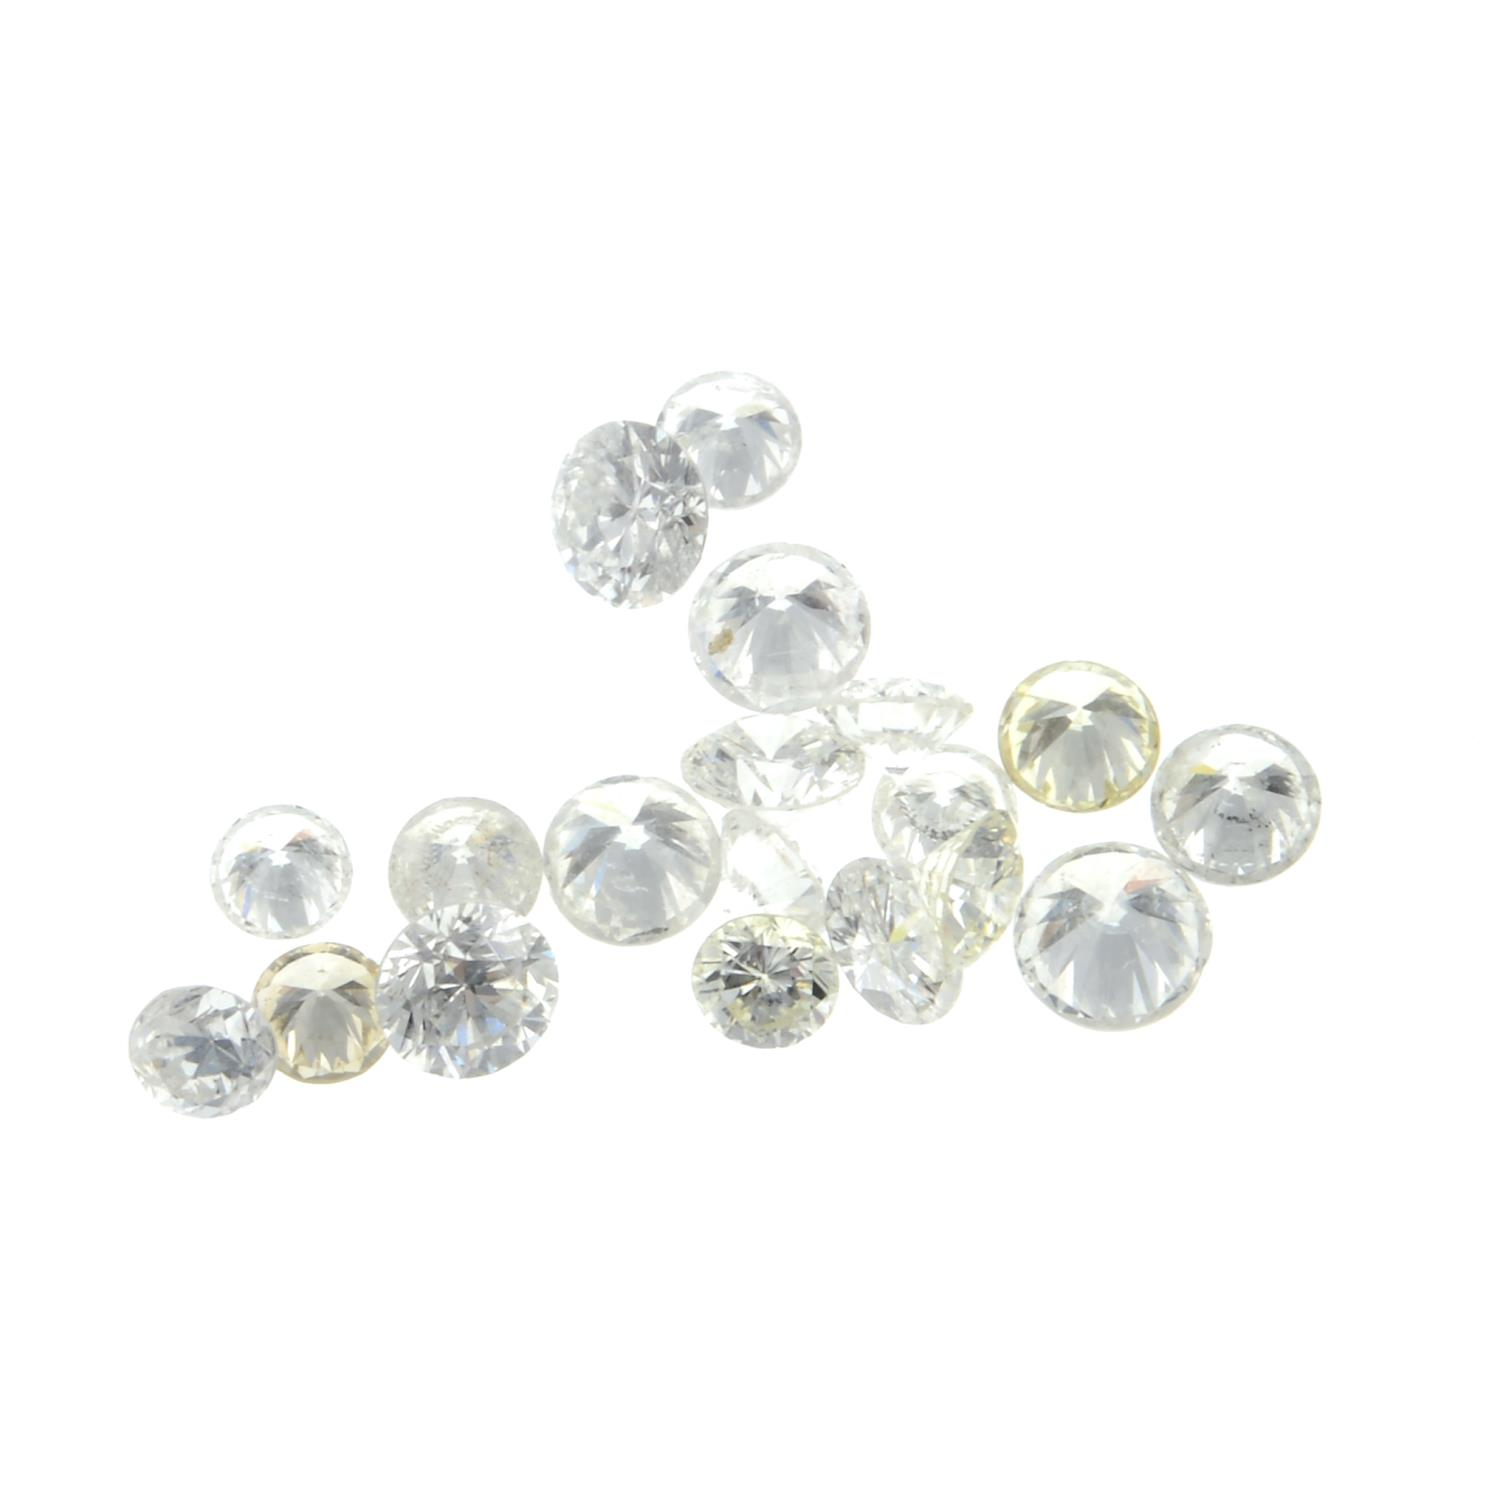 A selection of brilliant cut diamonds weighing 3.65ct PLEASE NOTE THIS LOT WILL CARRY VAT AT - Image 2 of 2